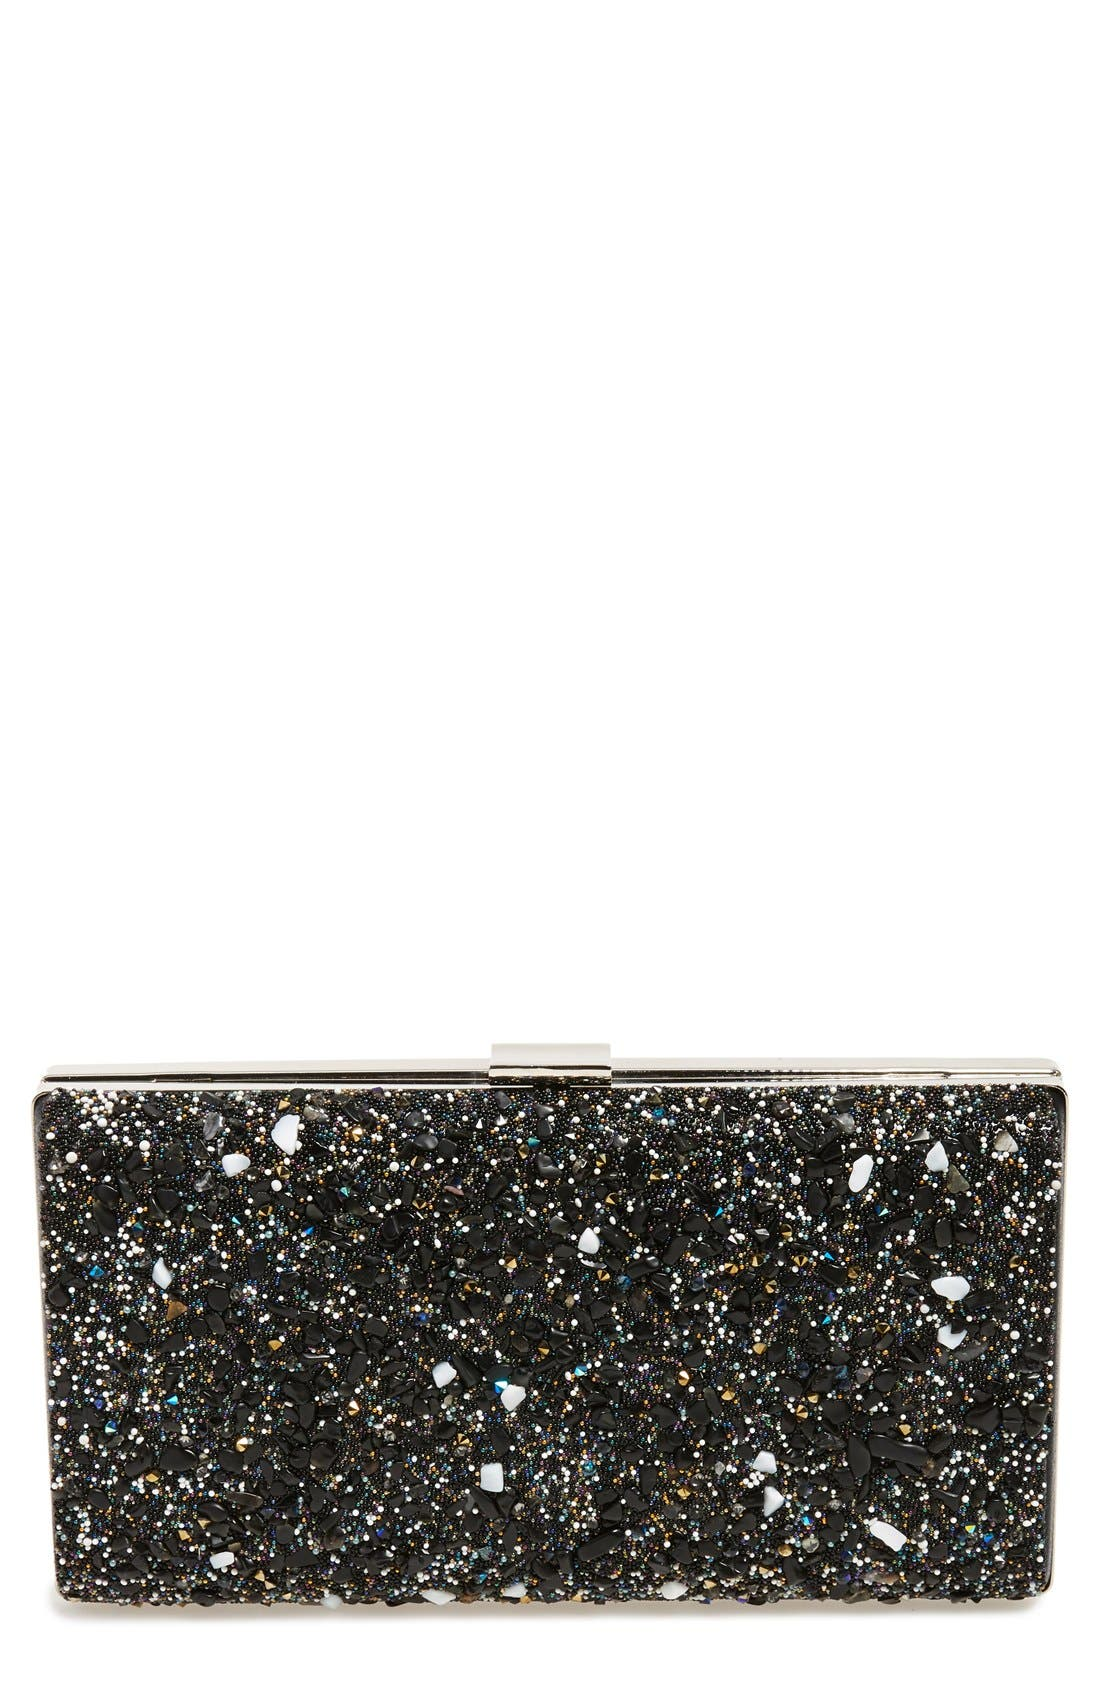 Alternate Image 1 Selected - Natasha Couture 'Starry Night' Box Clutch